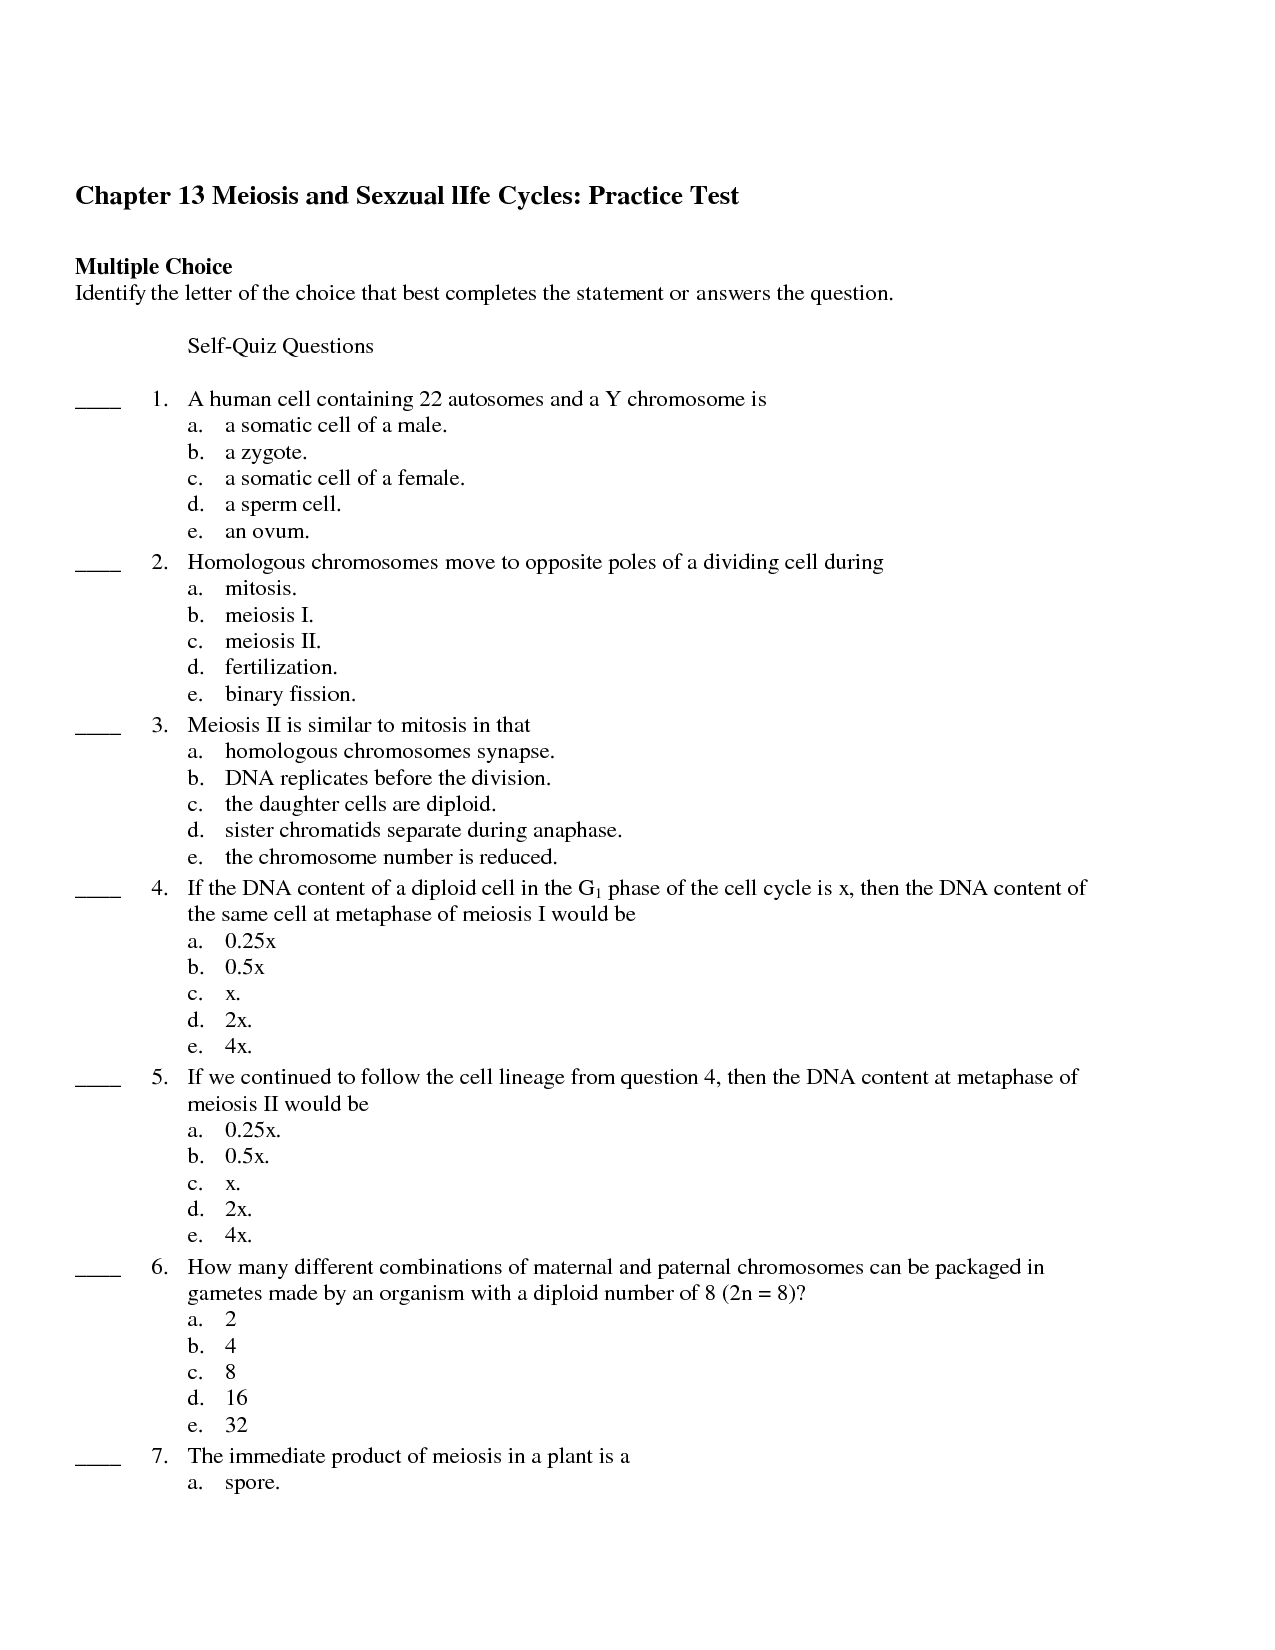 Biology MCAS Multiple Choice Practice   Mitosis and Meiosis by Kelly as well 15 Best Images of Mitosis And Meiosis Worksheet Answers    paring likewise Section 11 4 Meiosis Worksheet Answers   Winonarasheed in addition Worksheet    paring Mitosis and Meiosis  EDITABLE    TpT additionally Meiosis Worksheet Answer Key   Oaklandeffect in addition Chapter 5 The Cell Cycle  Mitosis  and Meiosis further Integrated Science Cycles Worksheet Answers Meiosis Reading additionally Mitosis questions  practice    Cell division   Khan Academy in addition  besides Main Idea Multiple Choice Worksheets Mitosis Vs Meiosis Worksheet together with Review Sheet Mitosis  Meiosis  DNA and RNA further  also worksheet  Meiosis Worksheet Multiple Choice Answers  Carlos Lomas further The Biology Coloring Book Answers Pages  paring Mitosis And in addition 17 Best Images of Mitosis Versus Meiosis Worksheet Answer Key additionally Meiosis Lesson Plans   Worksheets   Lesson Pla. on meiosis worksheet multiple choice answers